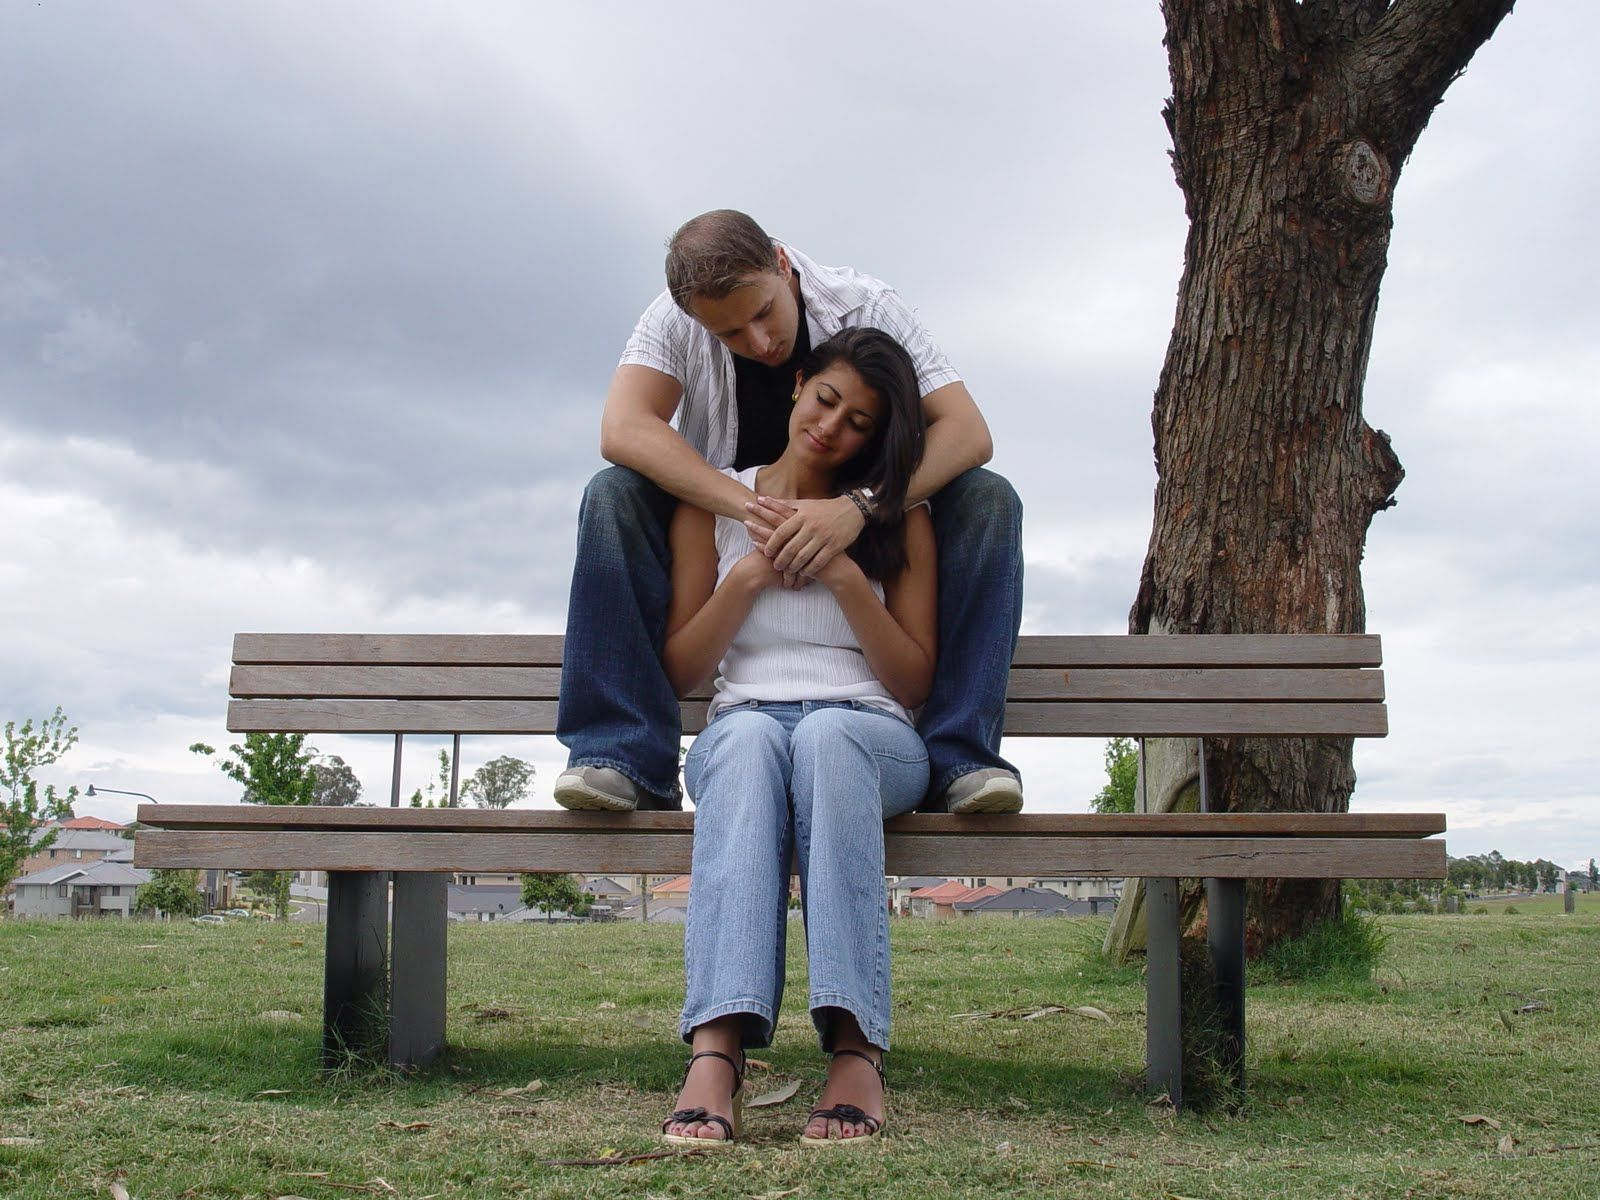 Hitwe dating, 5 dating site, chat rooms and india chat with no registration, the.